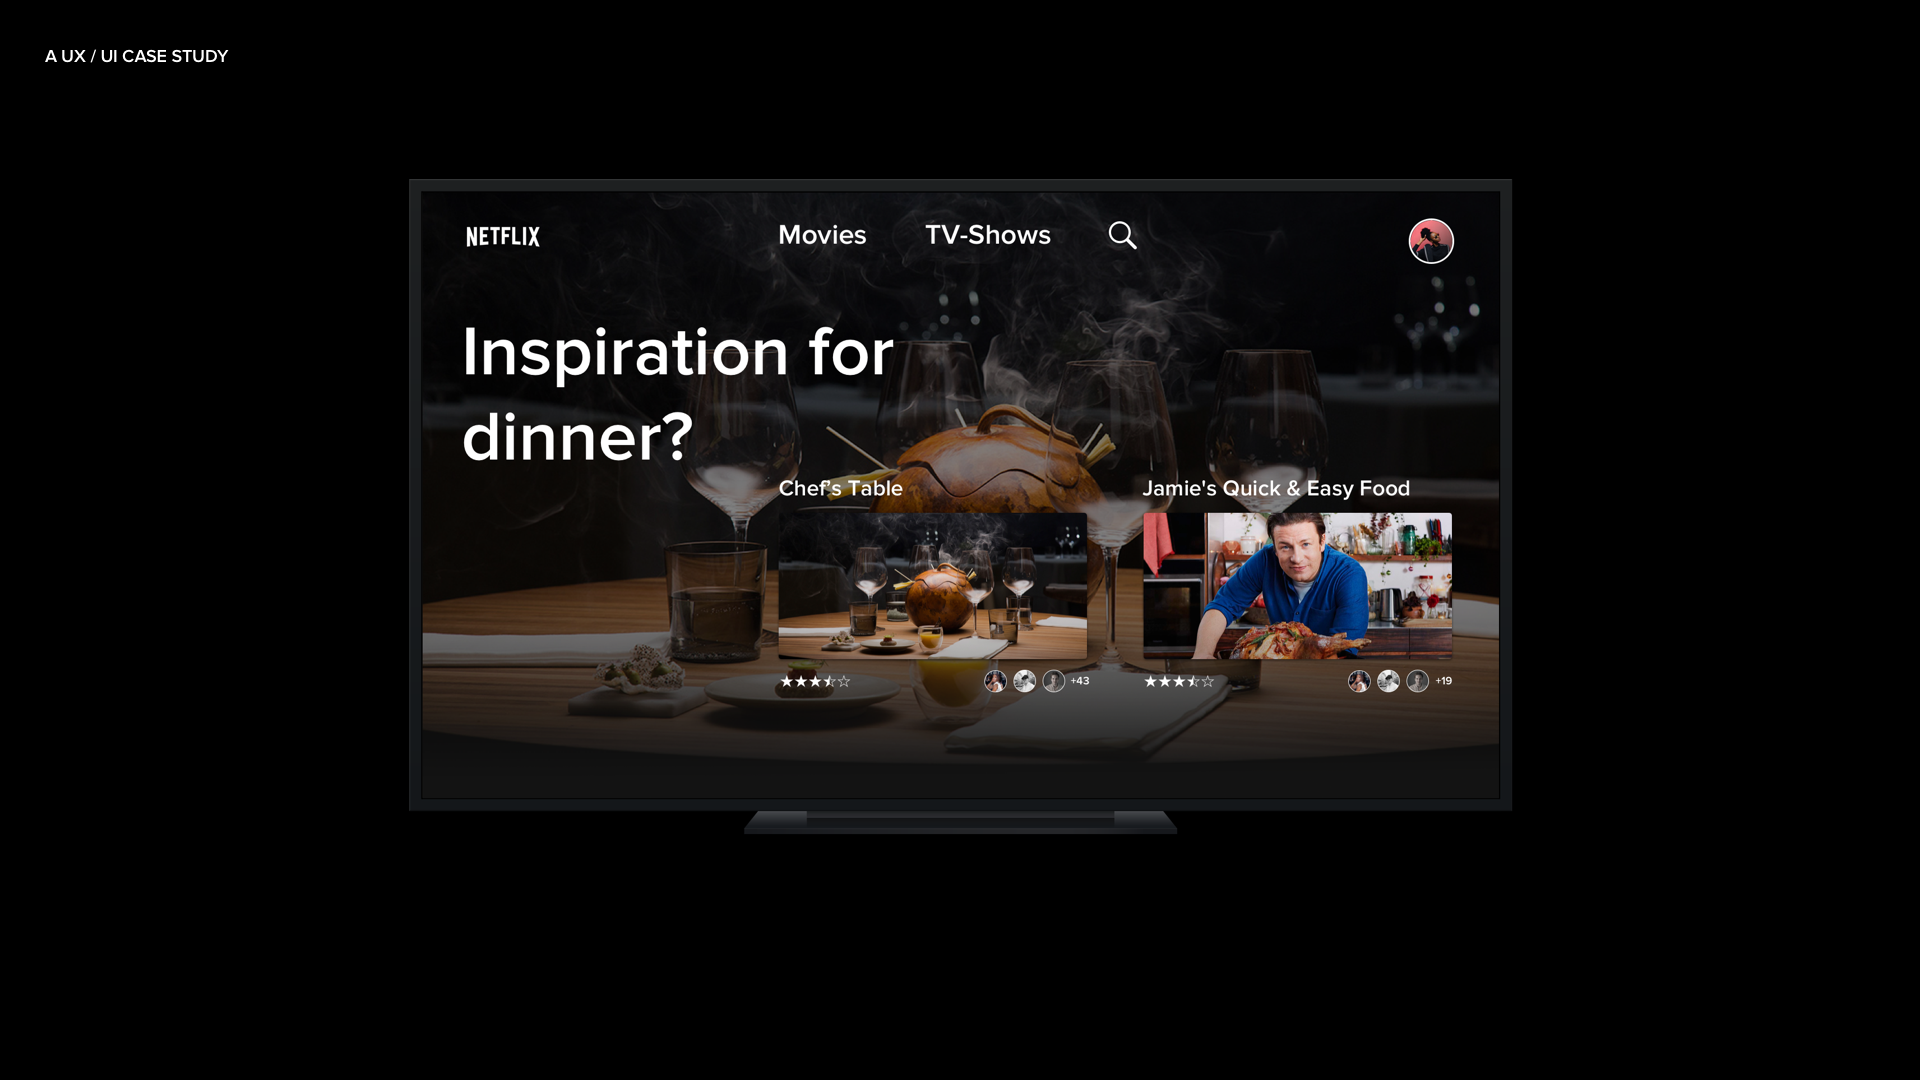 Netflix discovery experience — a UX/UI case study - UX